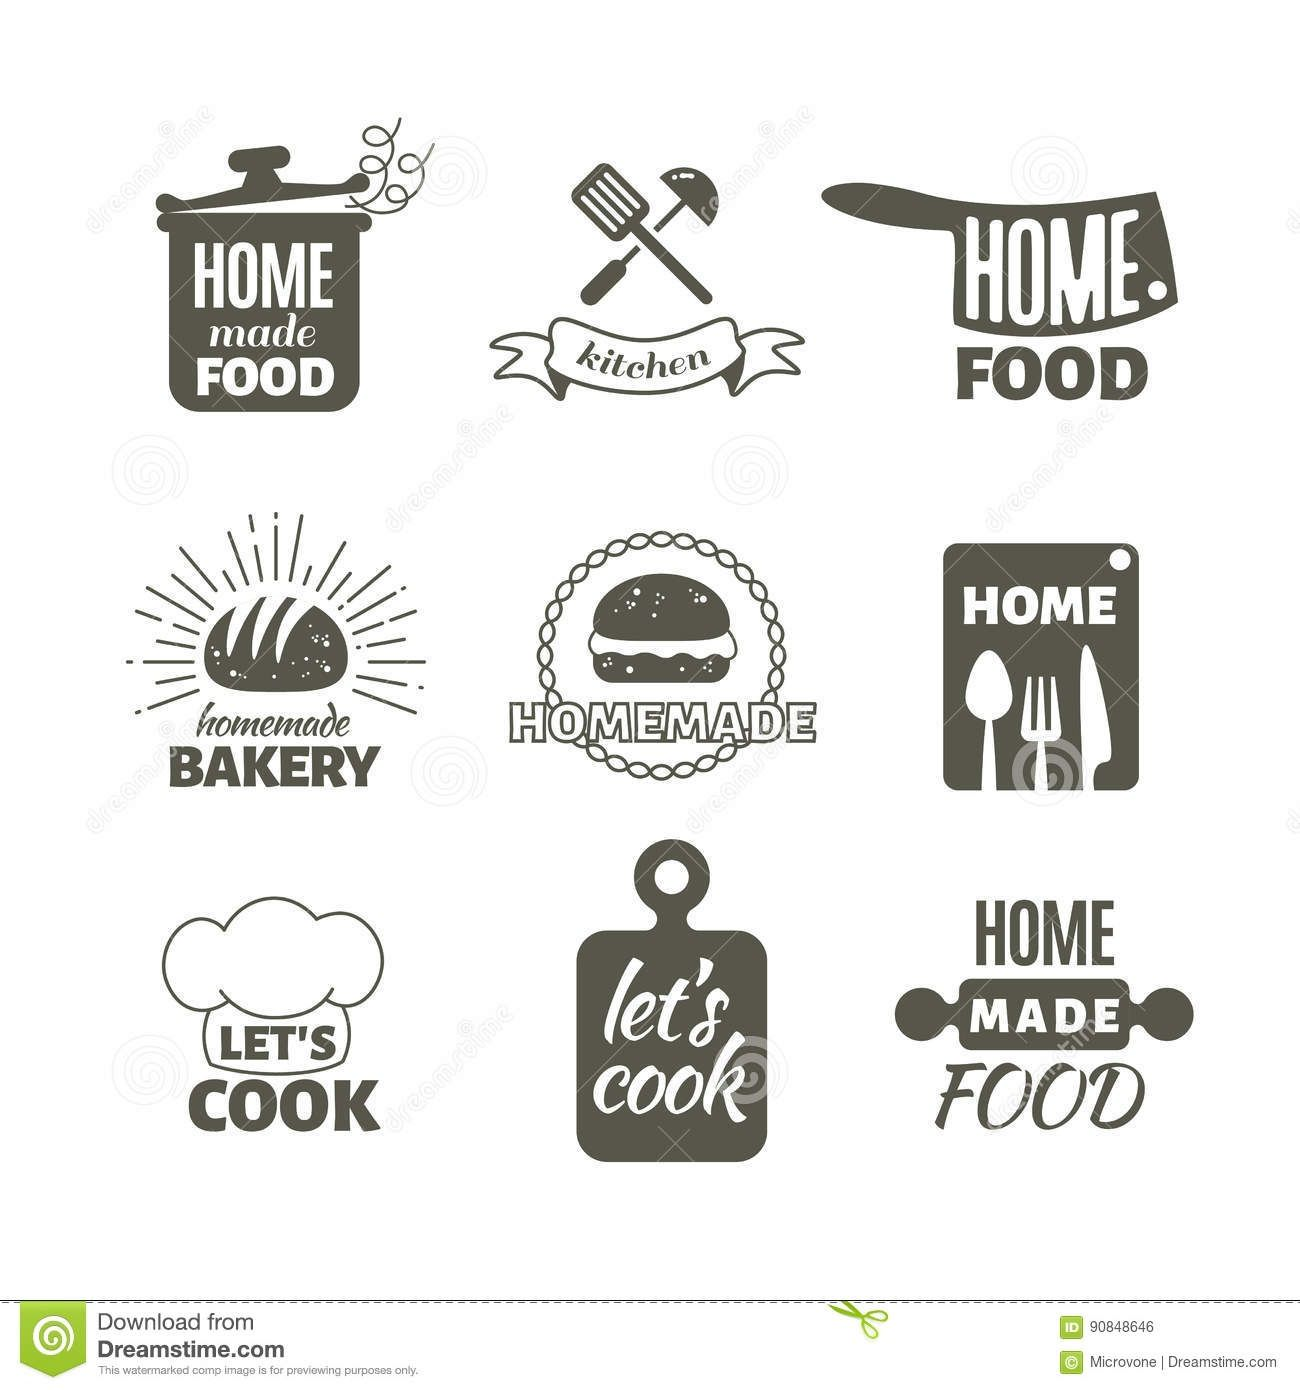 35 Beautiful Kitchen Logo Ideas Kitchen logo, Retro